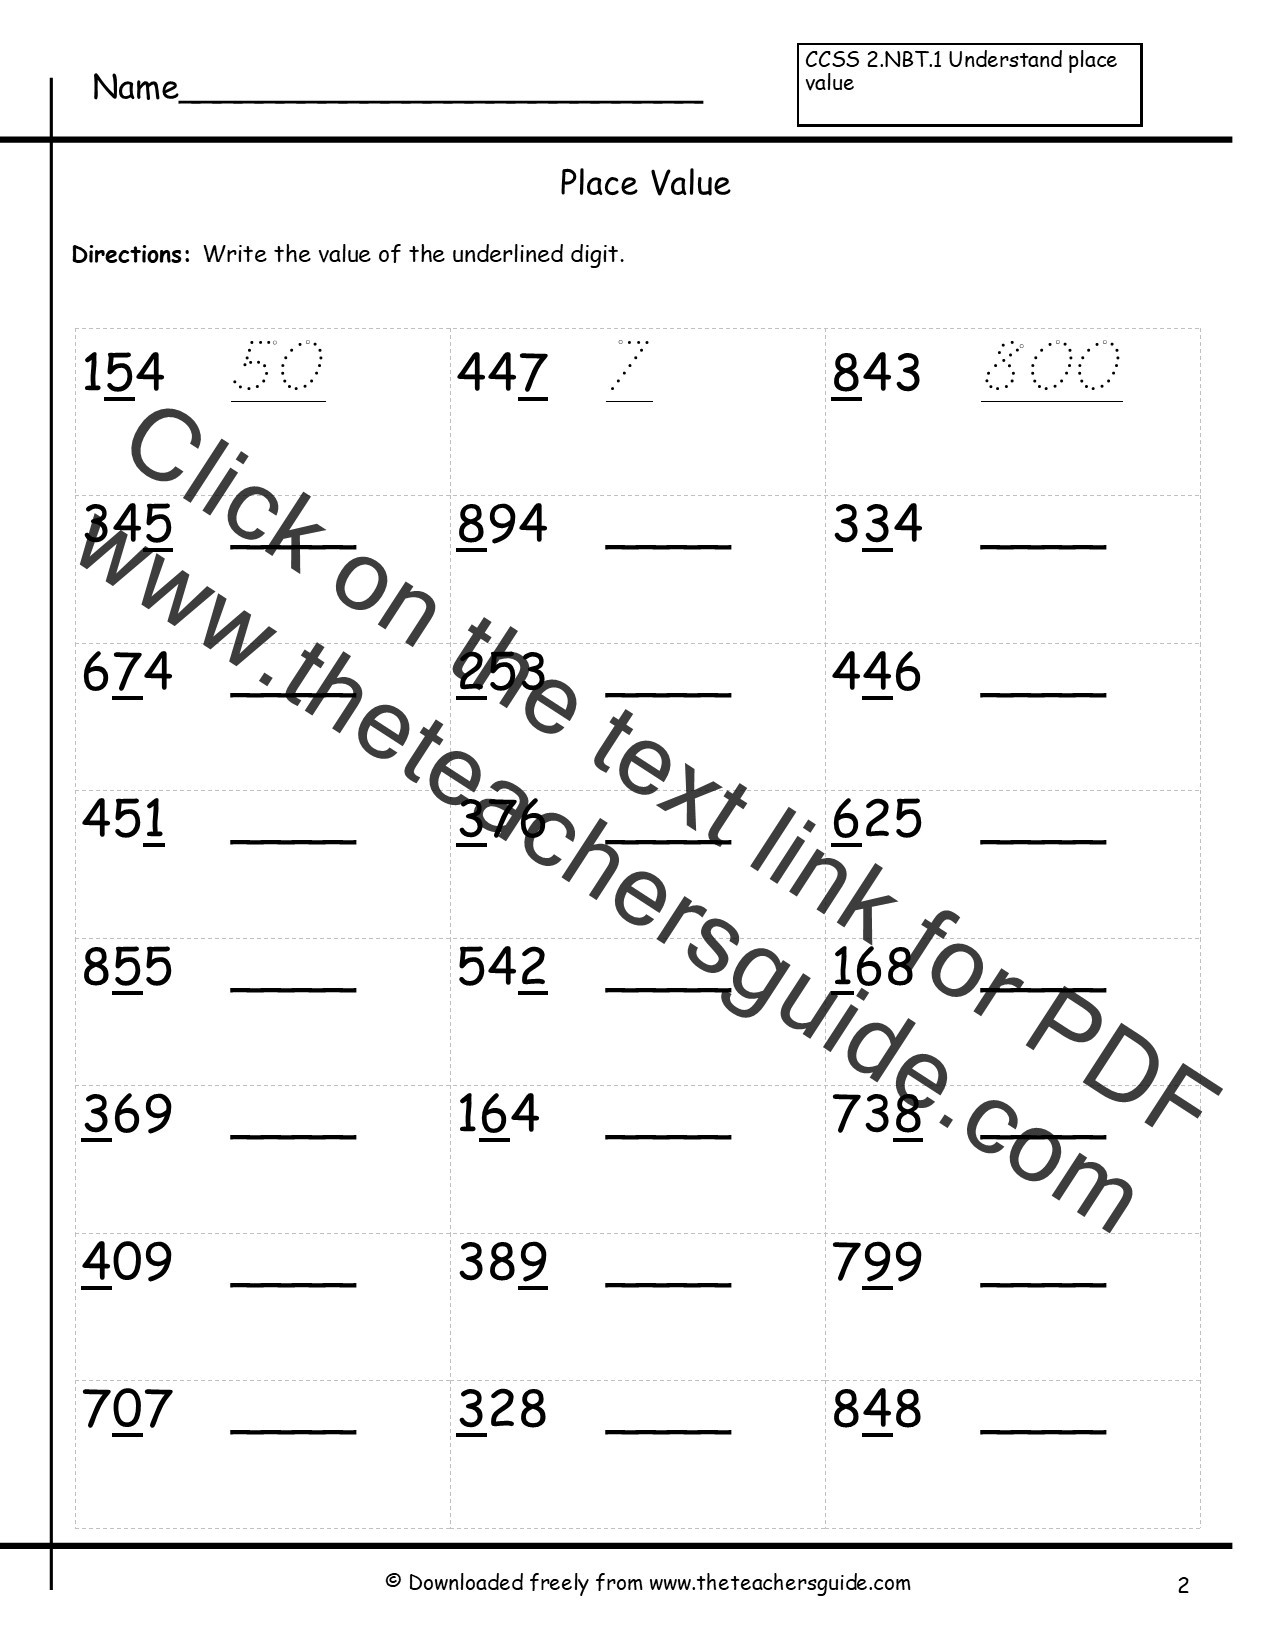 Place Value Worksheet 3rd Grade Mrs Garay S Place Value for Third Grade Lessons Tes Teach